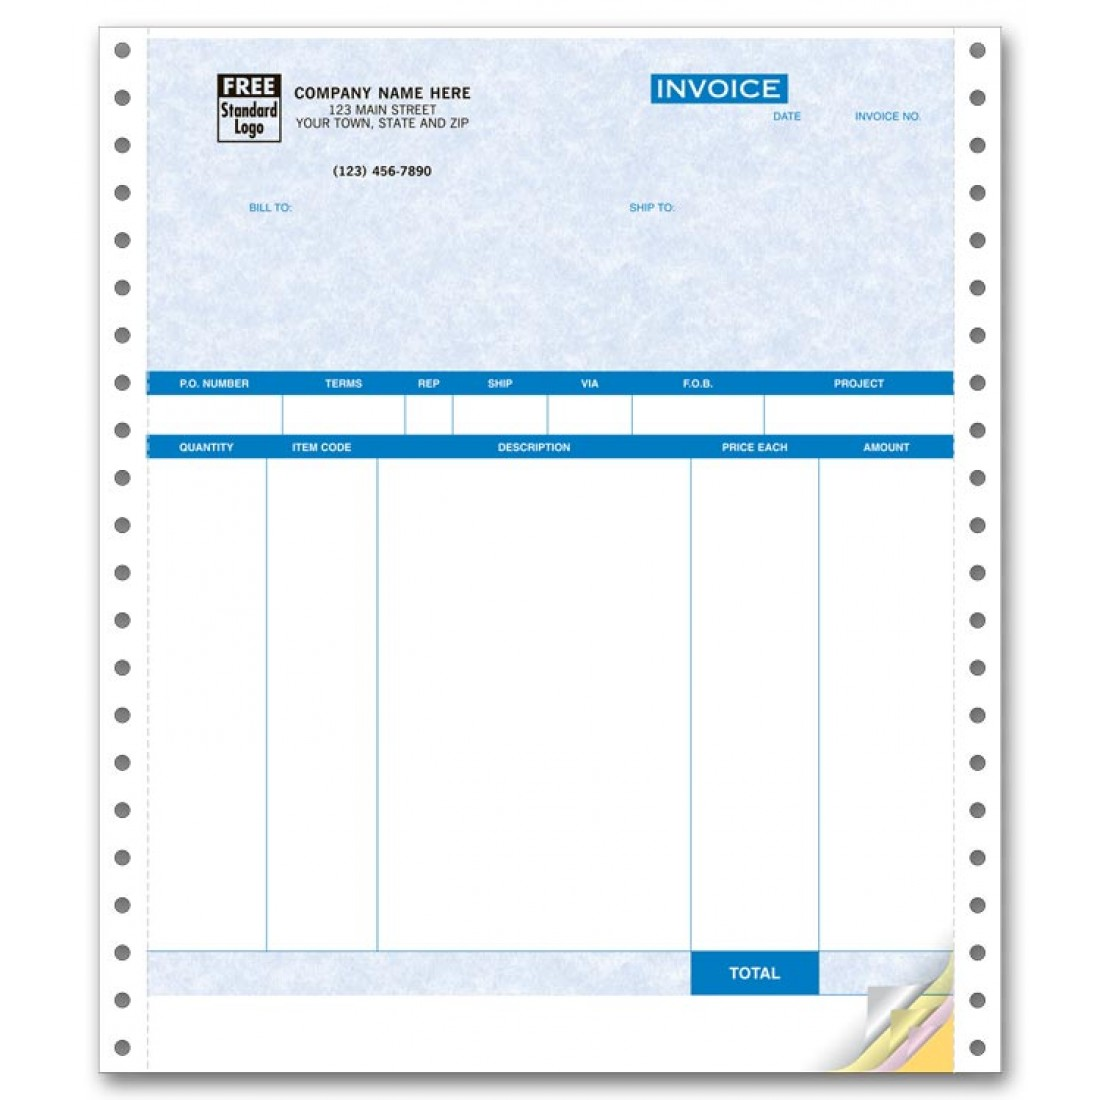 Continuous Product Invoice for QuickBooks - No Packing